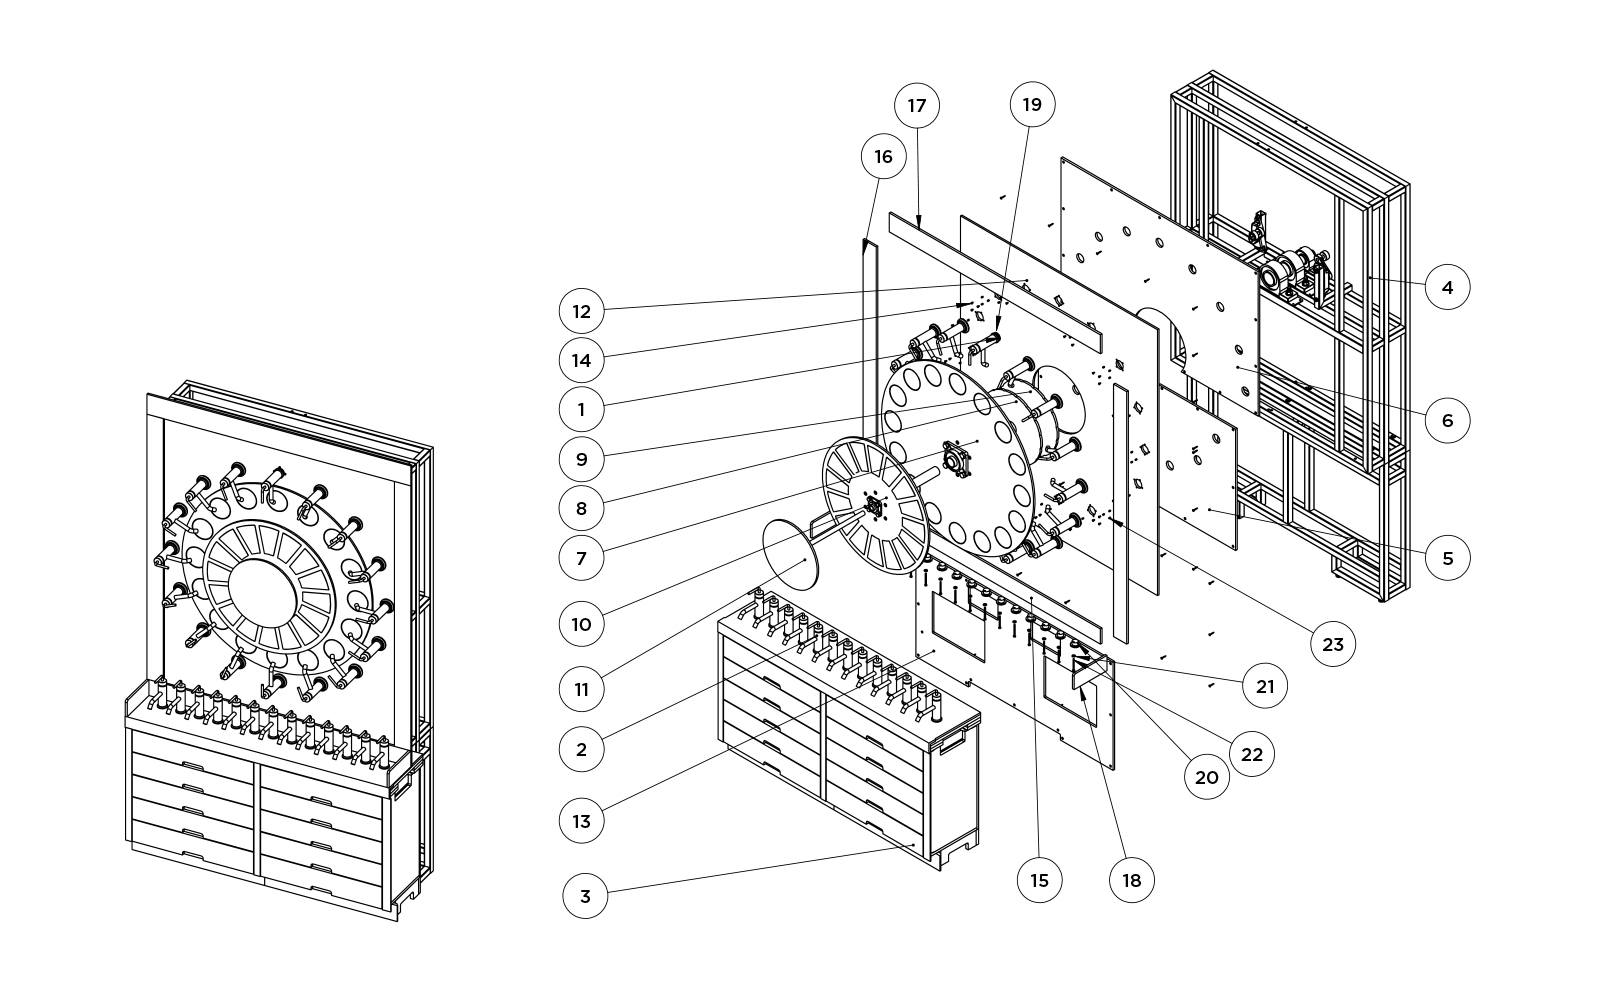 A diagram of the Kohler display that The Bernard Group engineered with an innovative mechanism that perfectly aligns each unique finish by easily clicking into place while also securely supporting the weight of the full system.